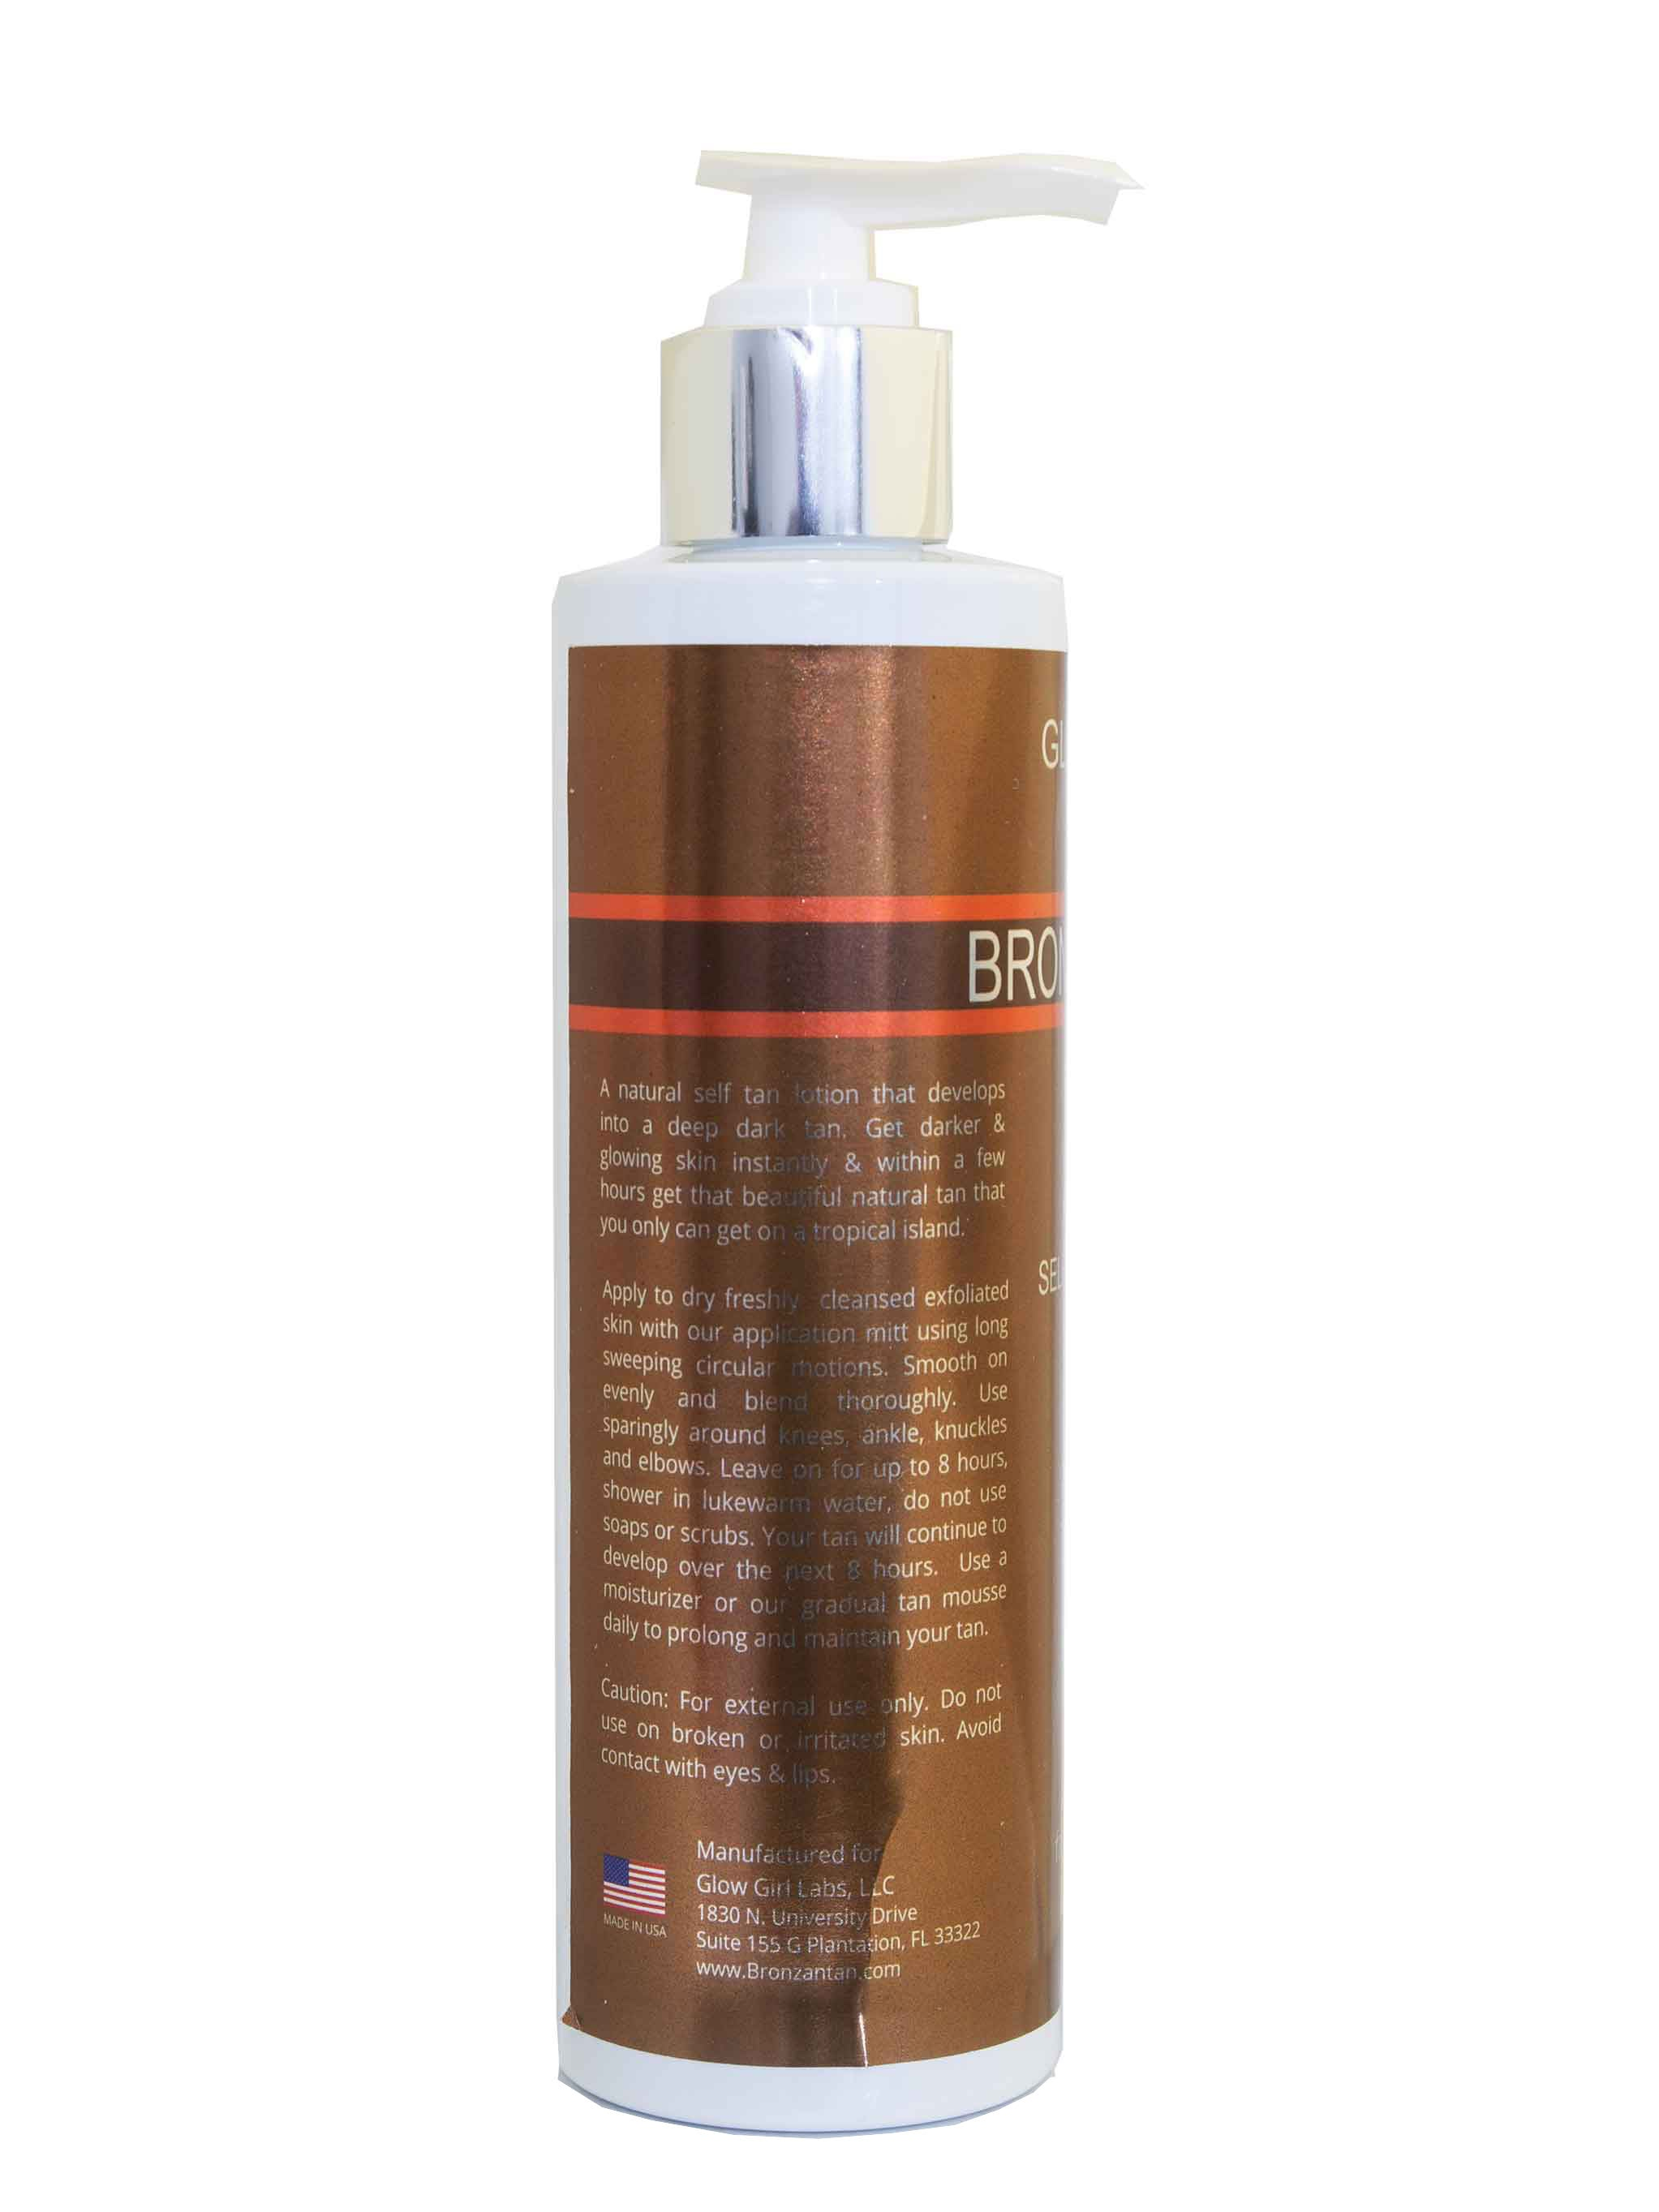 BRONZAN TAN NATURAL GLOW SELF TAN LOTION - 6.7 OZ - BRONZAN TAN